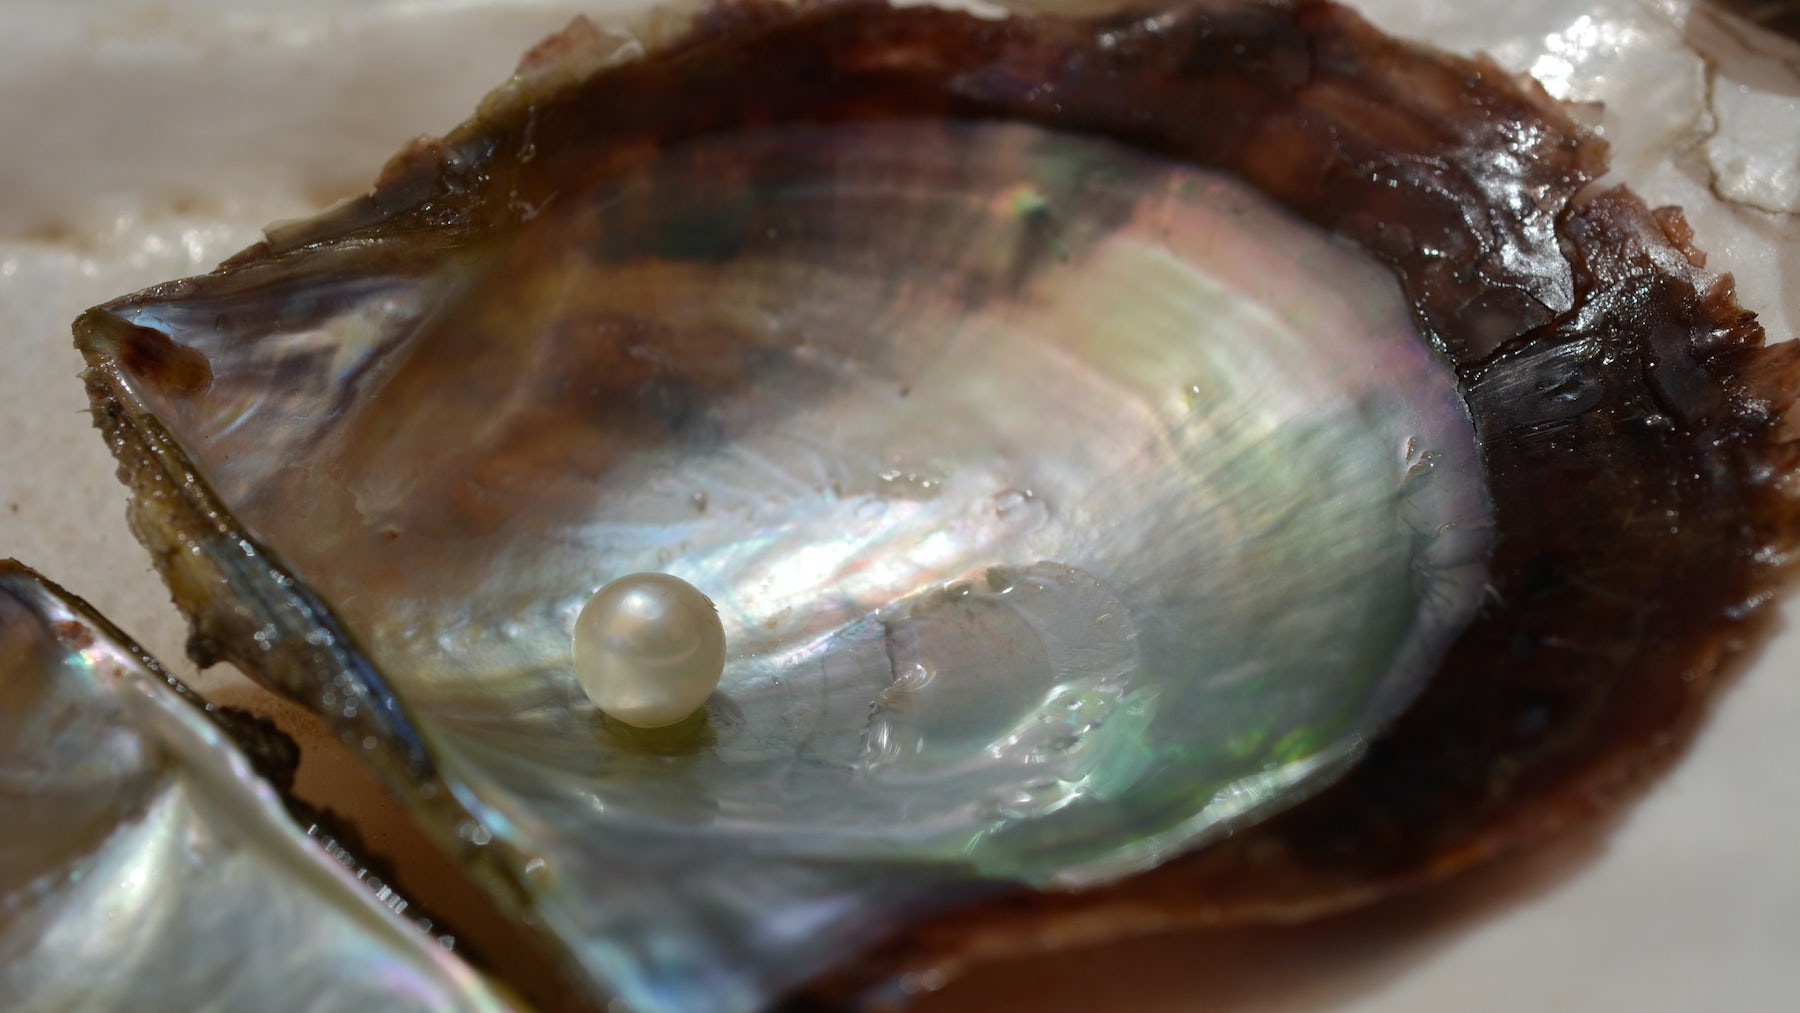 A cultured pearl | Source: Shutterstock